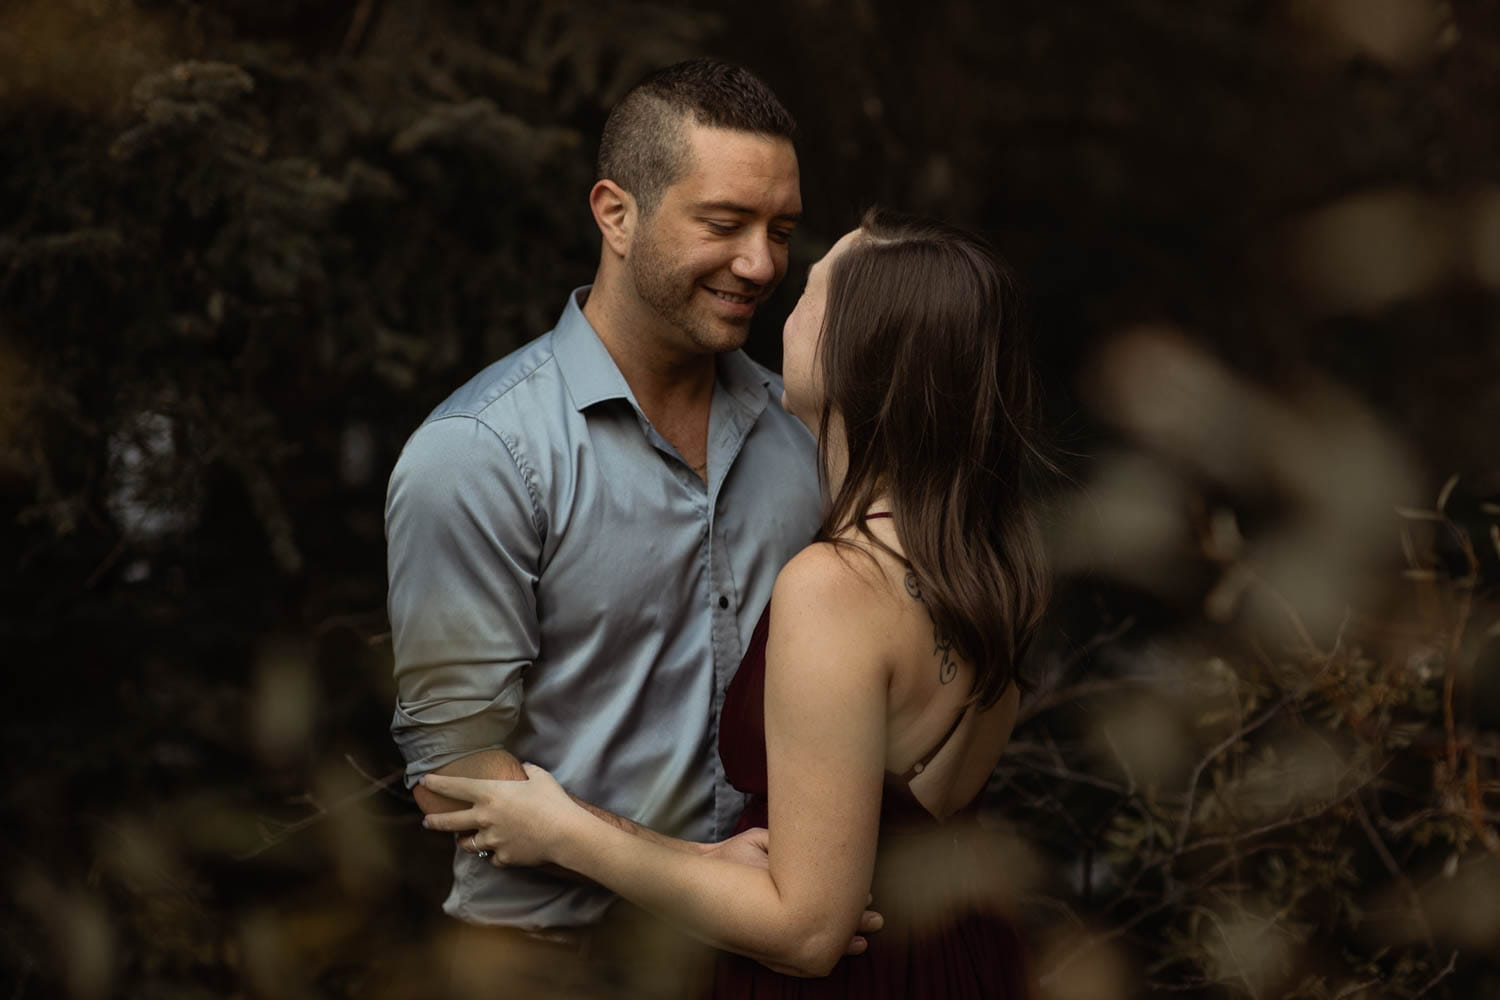 Couple portrait in forest